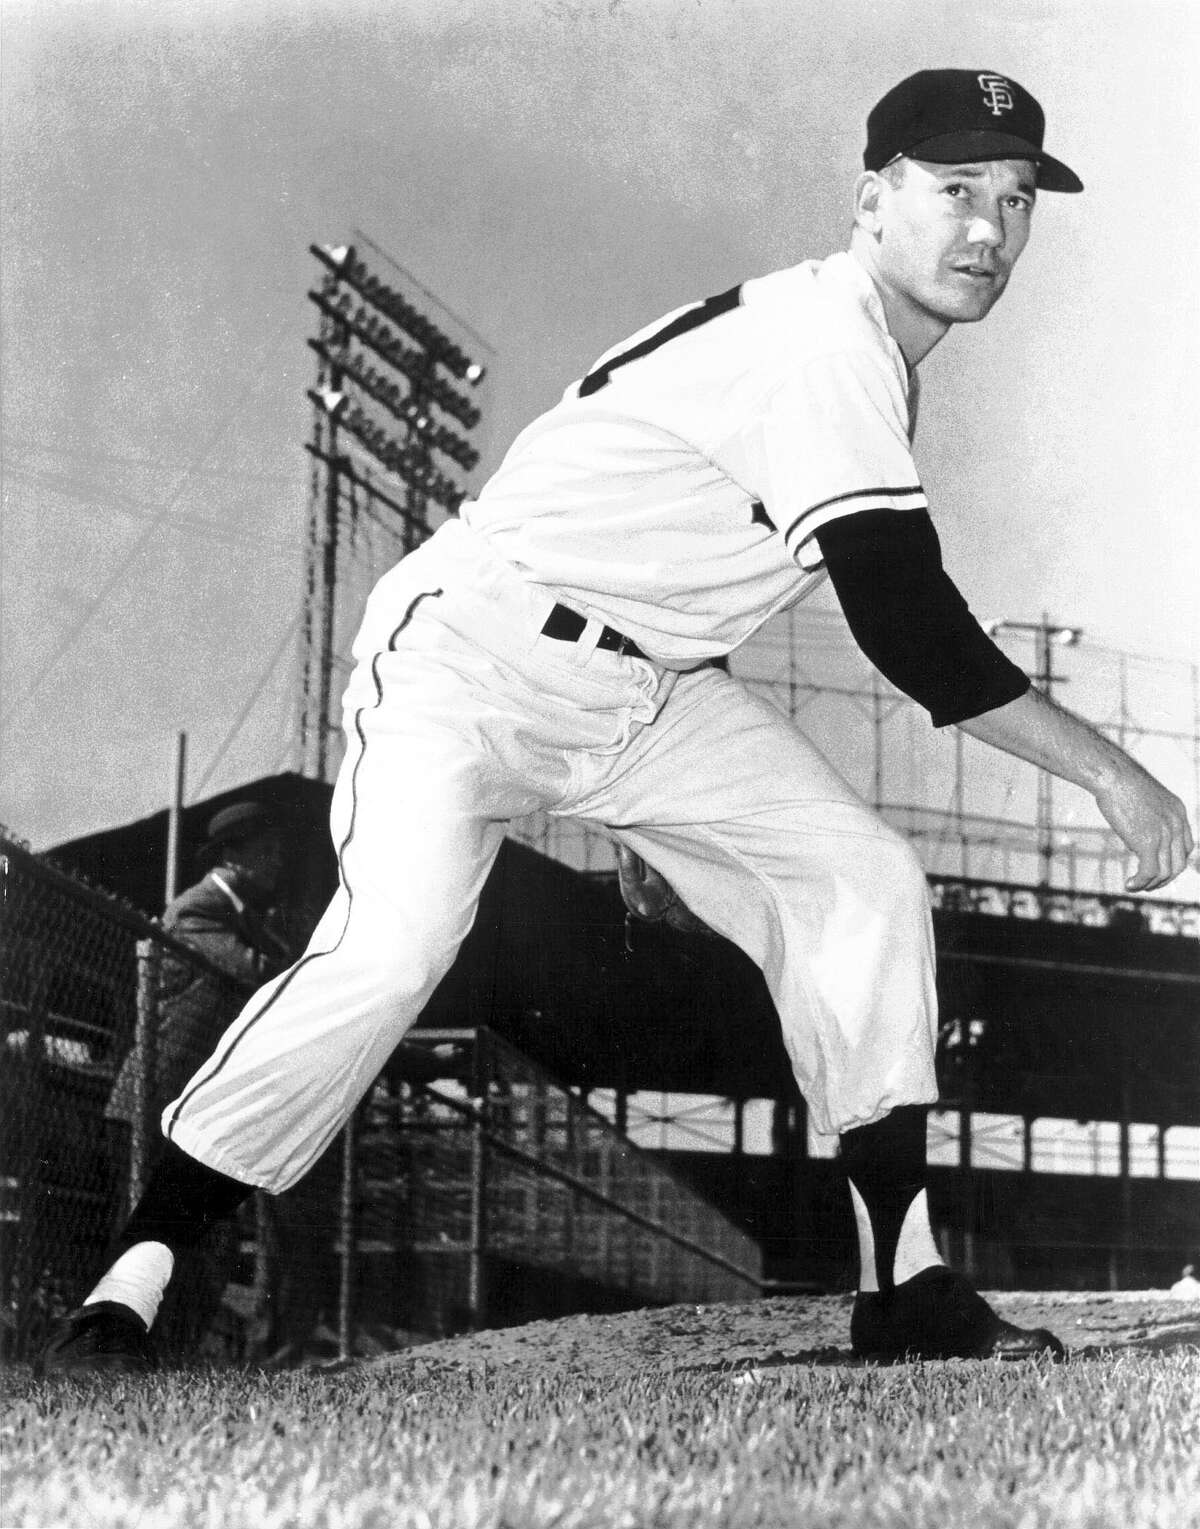 Stu Miller had 154 career saves, leading the National League and American League in one season each. He pitched for the Giants from 1957 to 1962 and won a World Series with the Orioles in 1966.